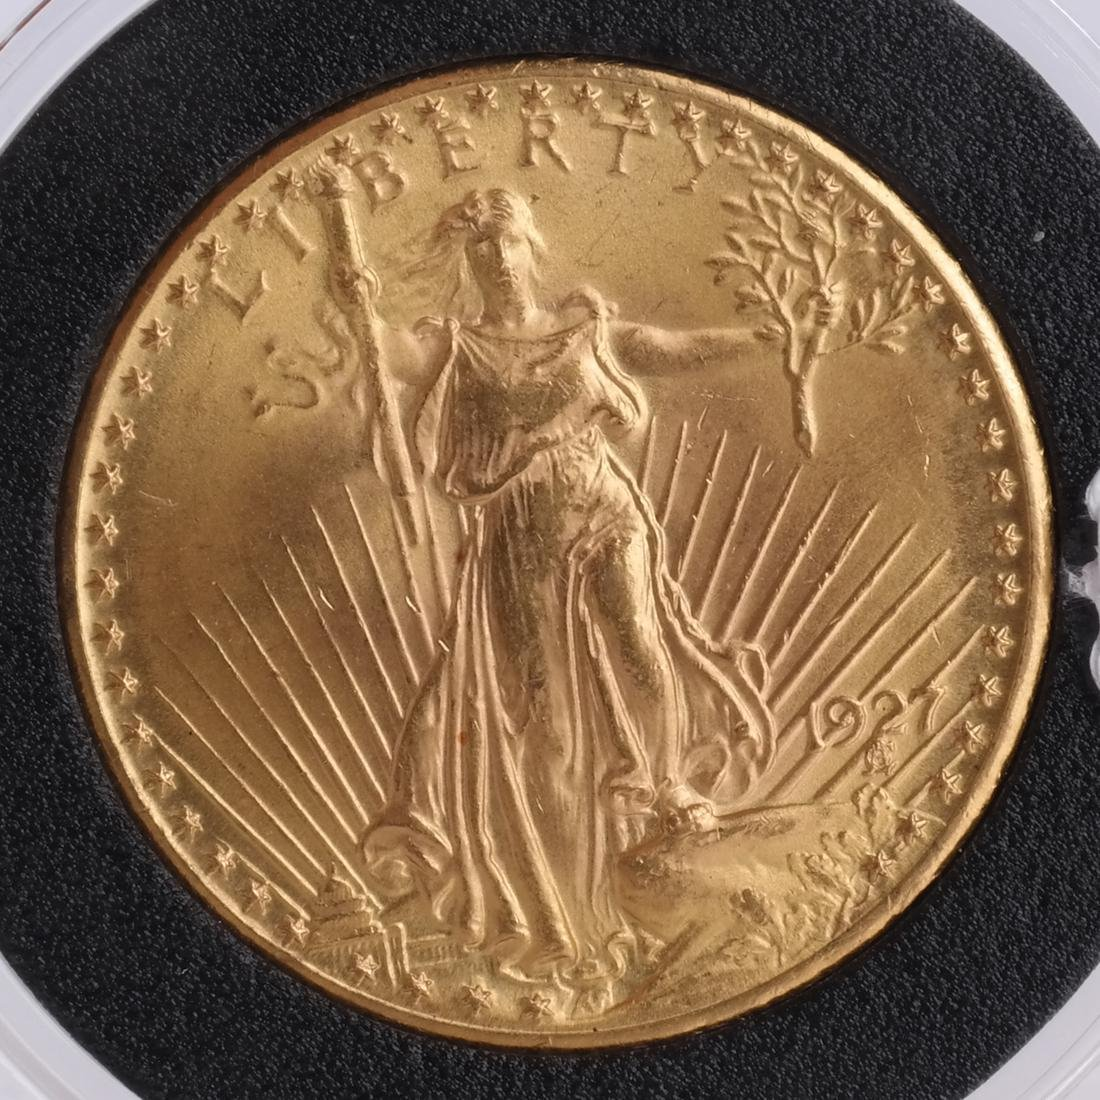 1927 $20 Gold Saint Gaudens, MS 65